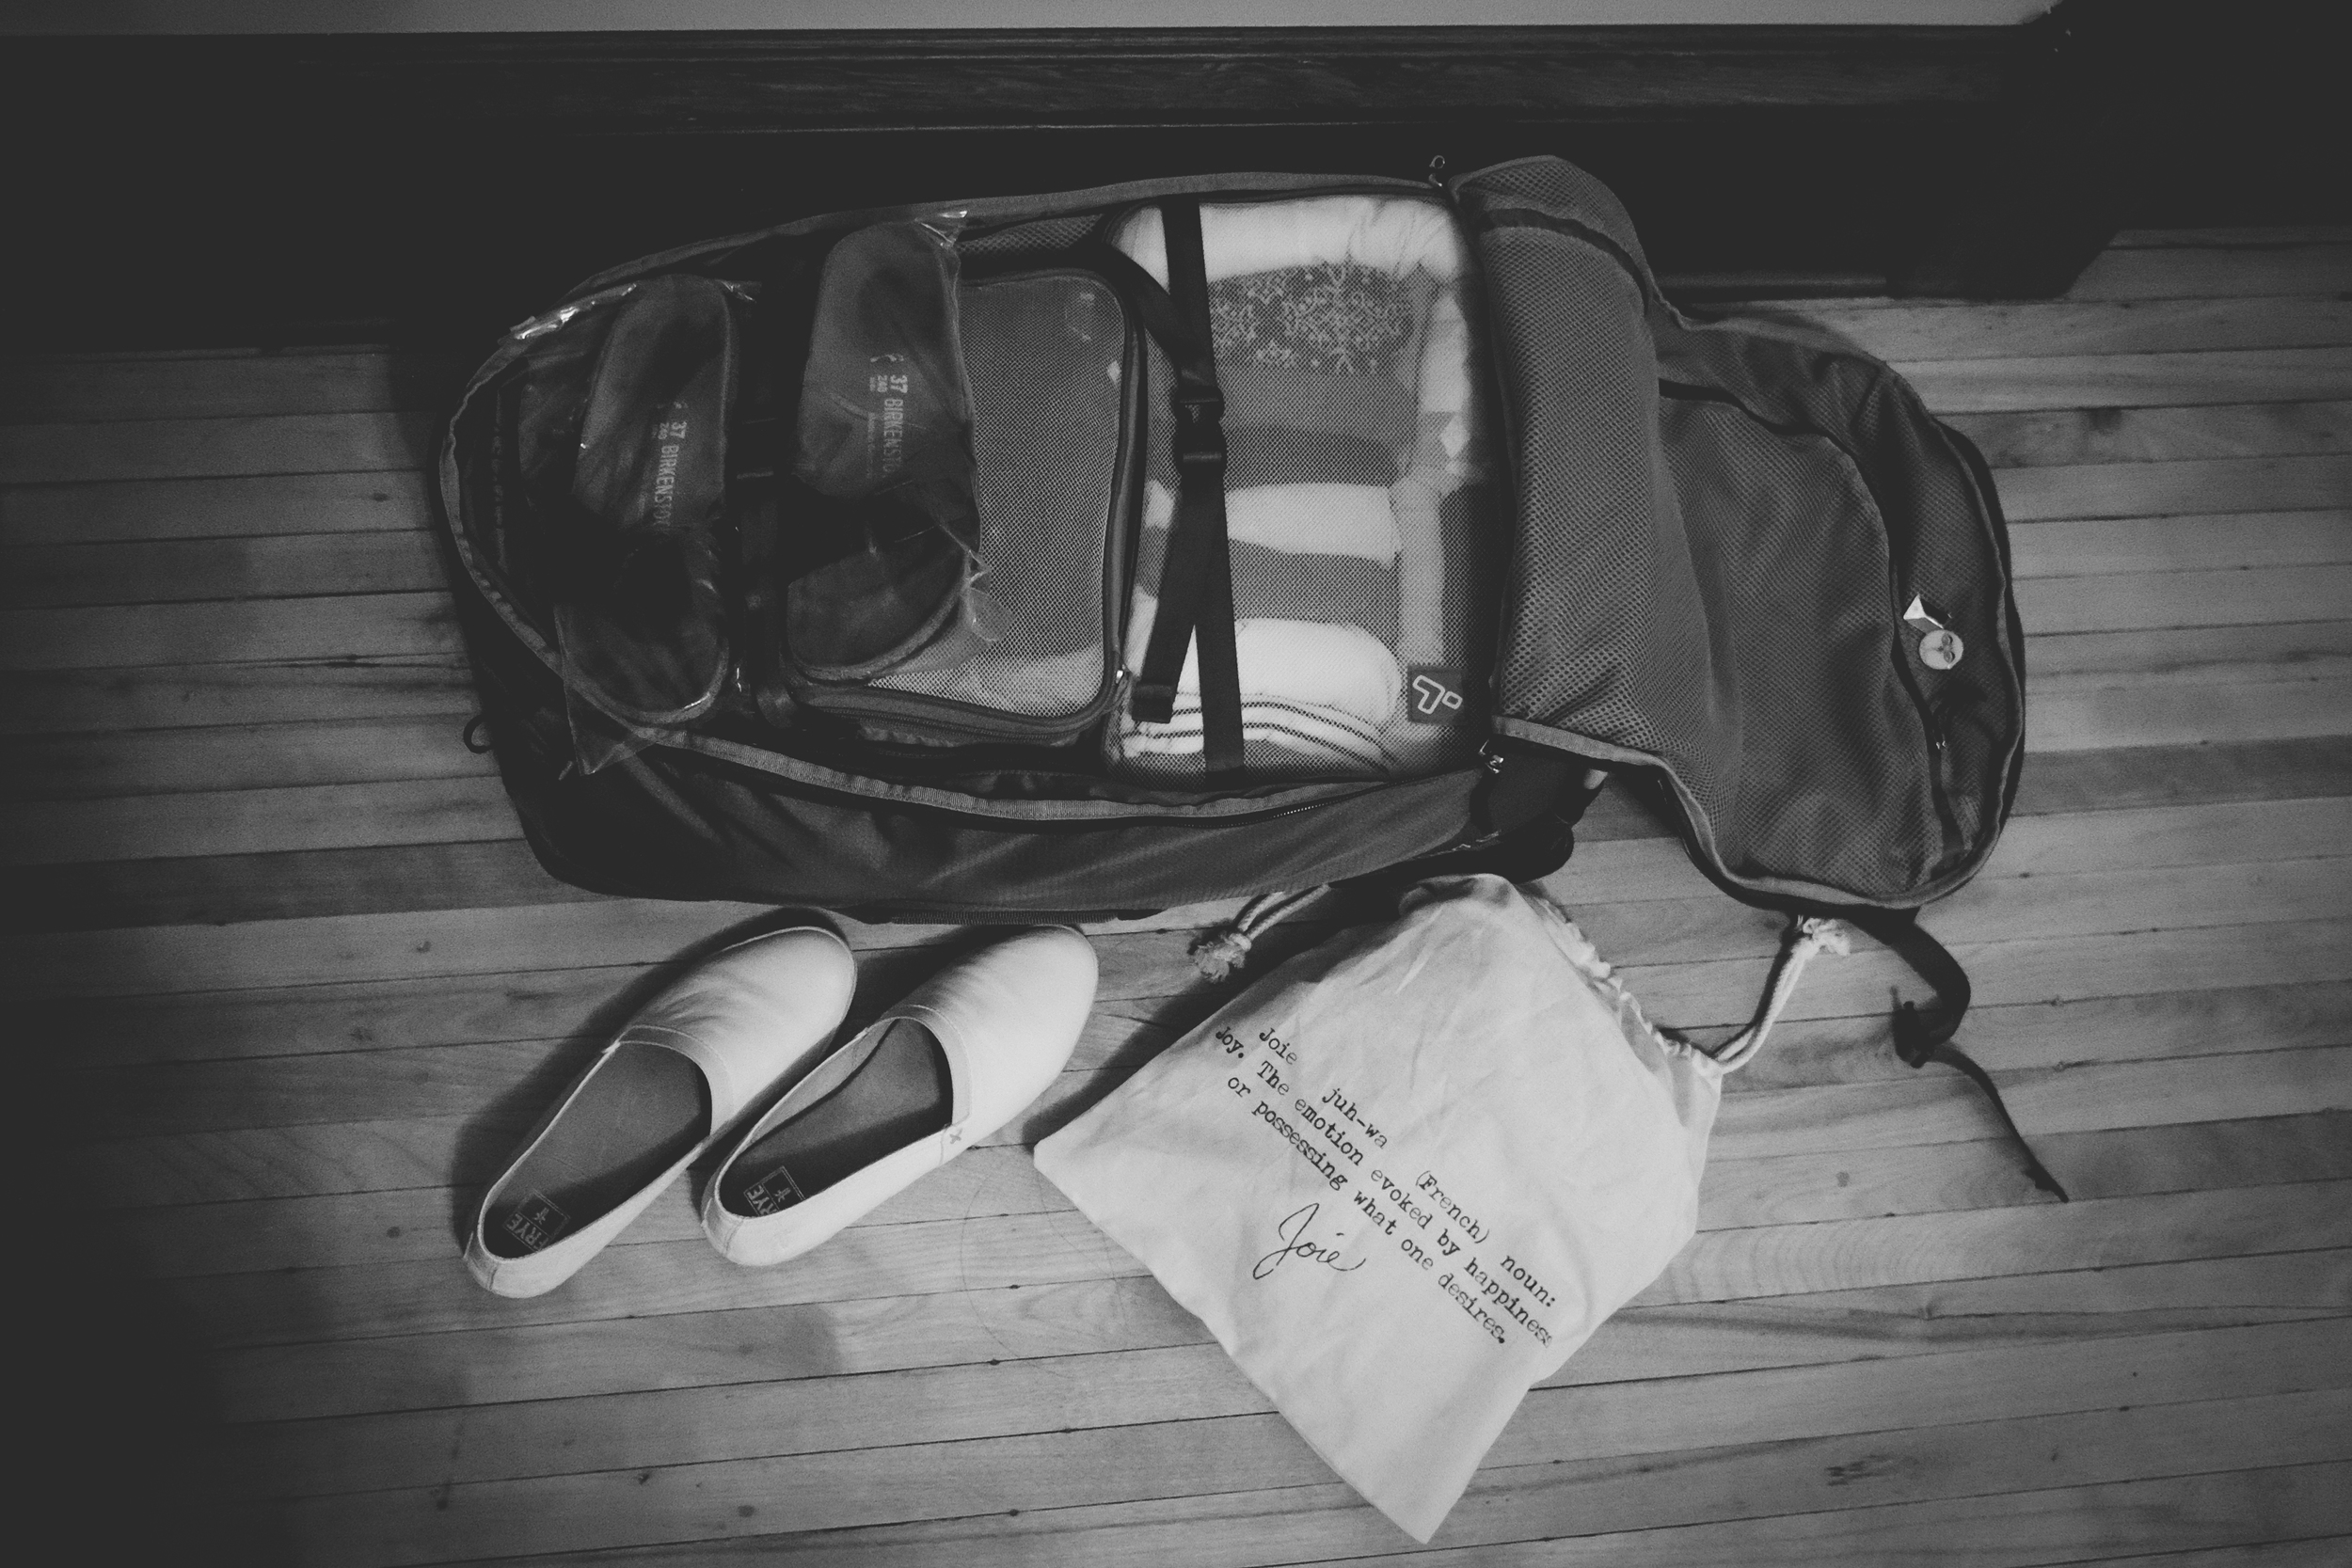 29. My new(ish) travel pack on our 106 year old floor